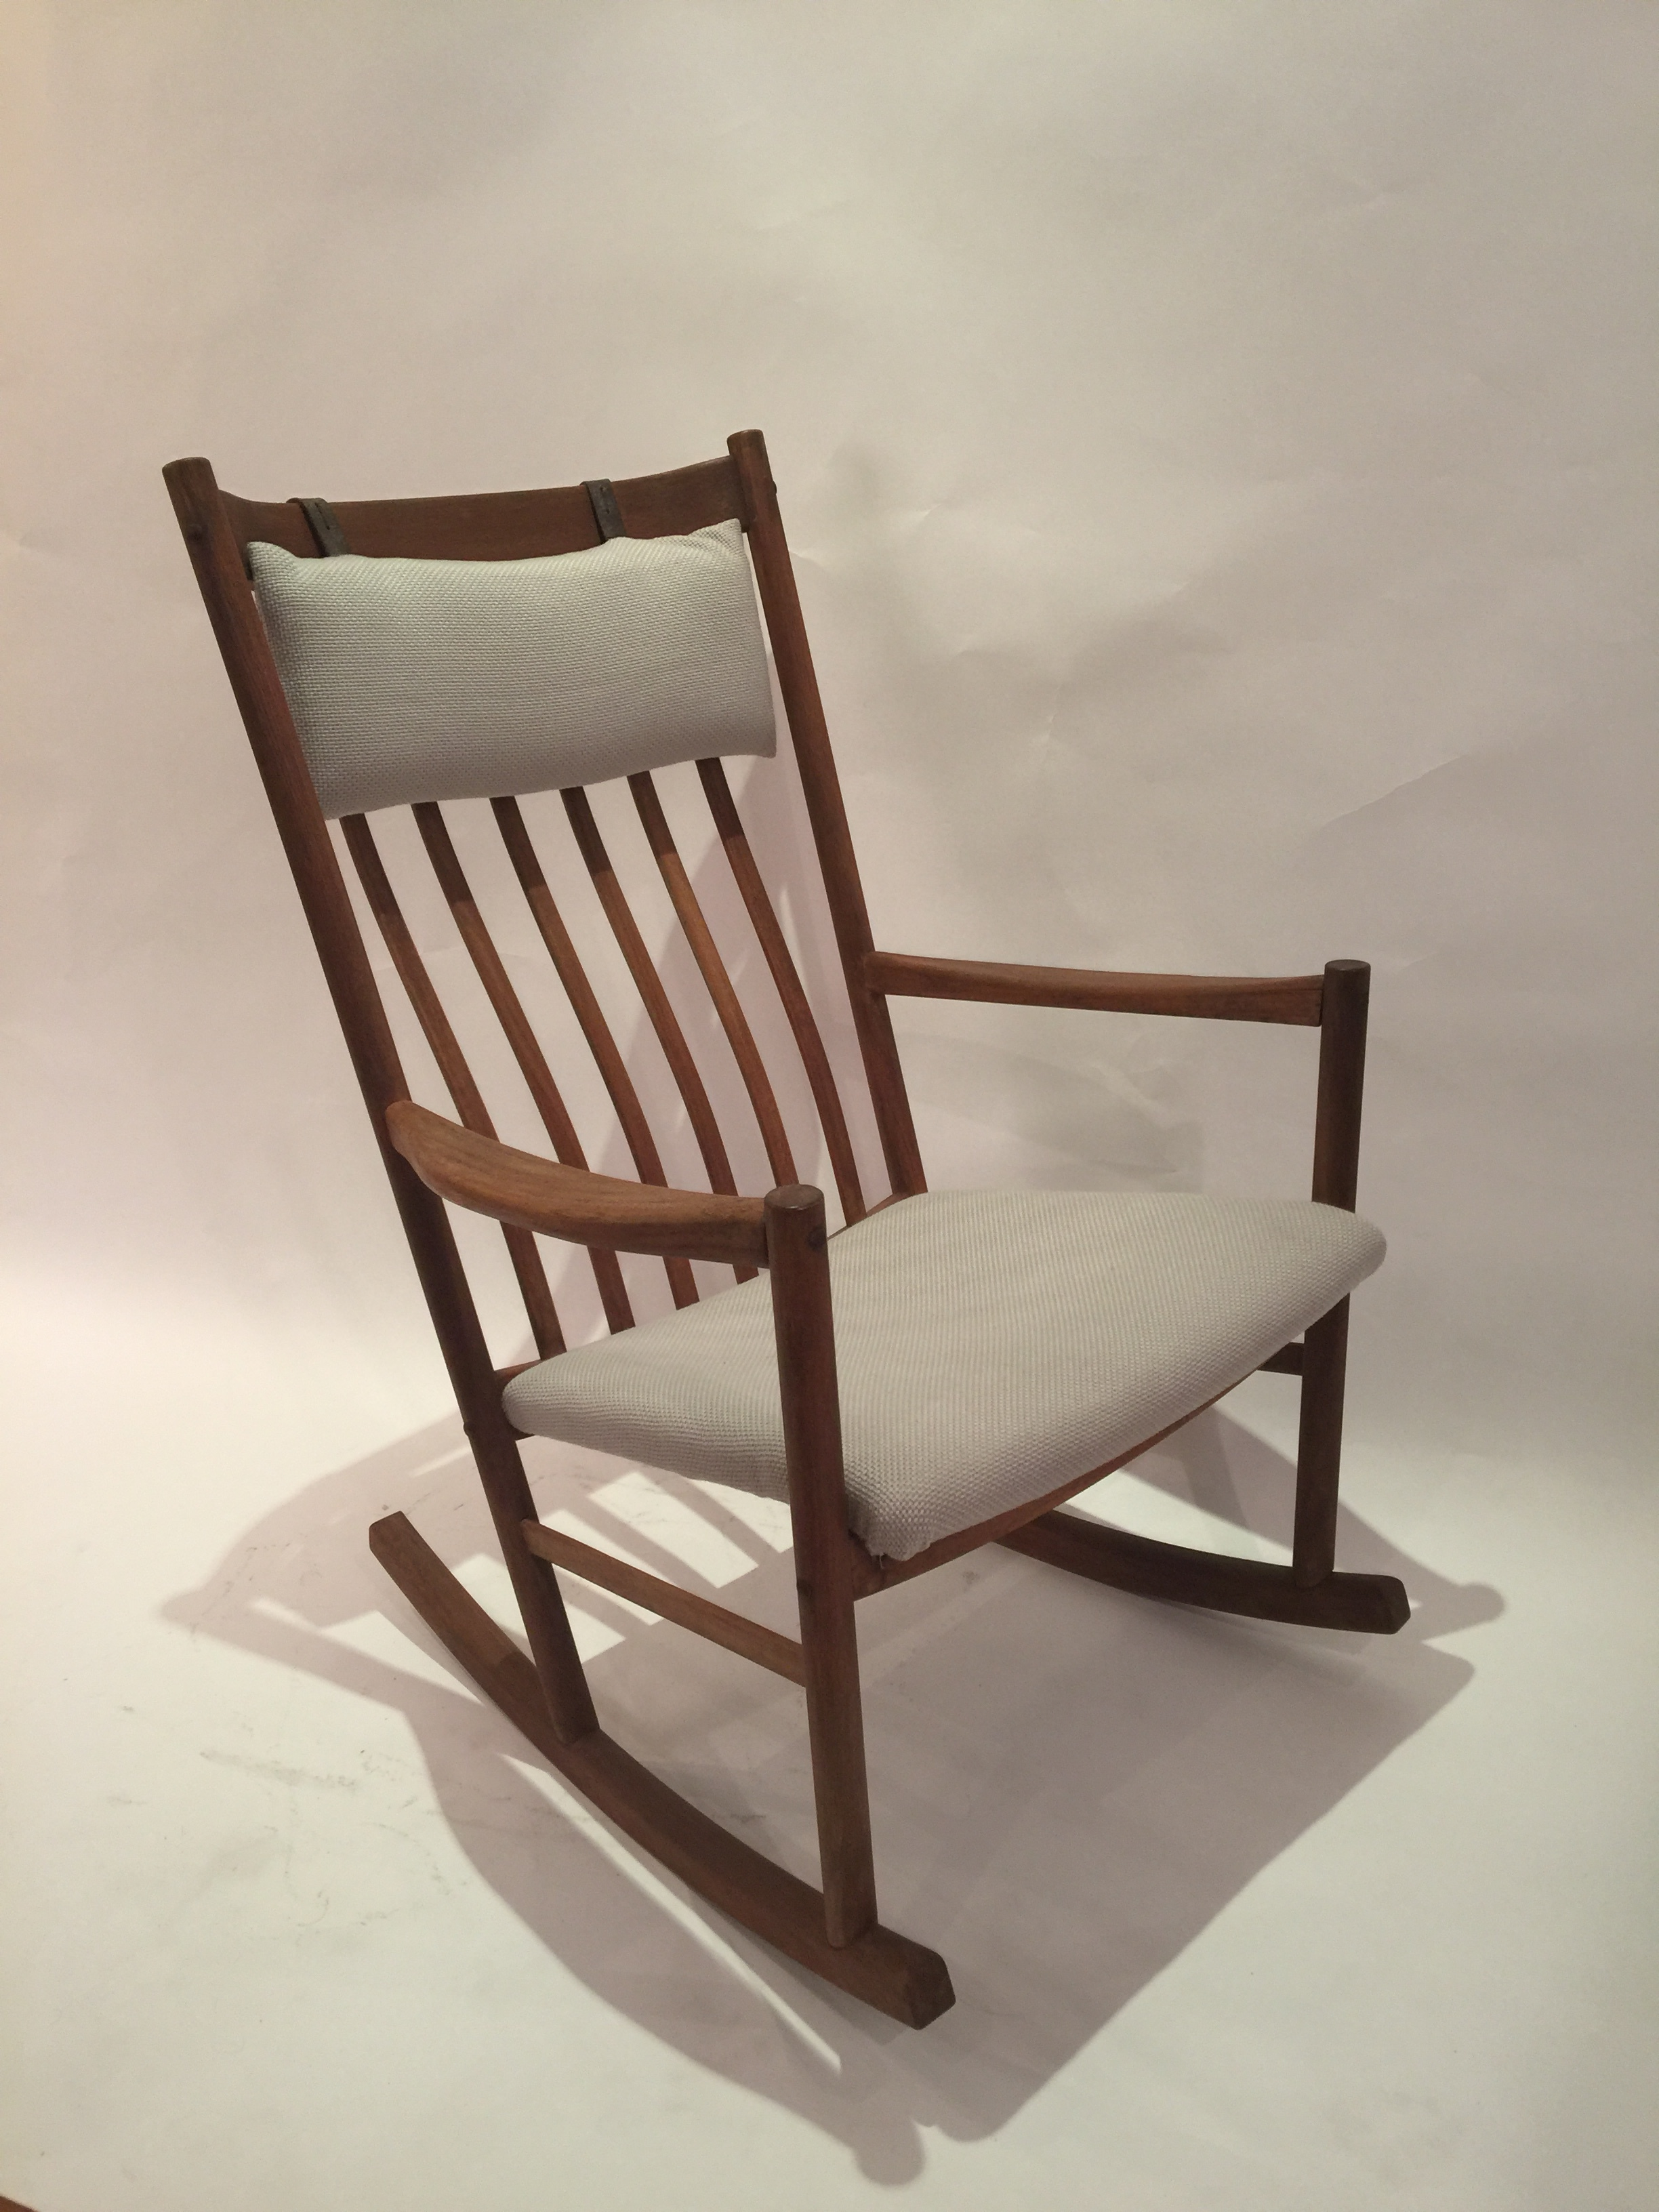 Hans J. Wagner Rocking Chair for Tarm Stole